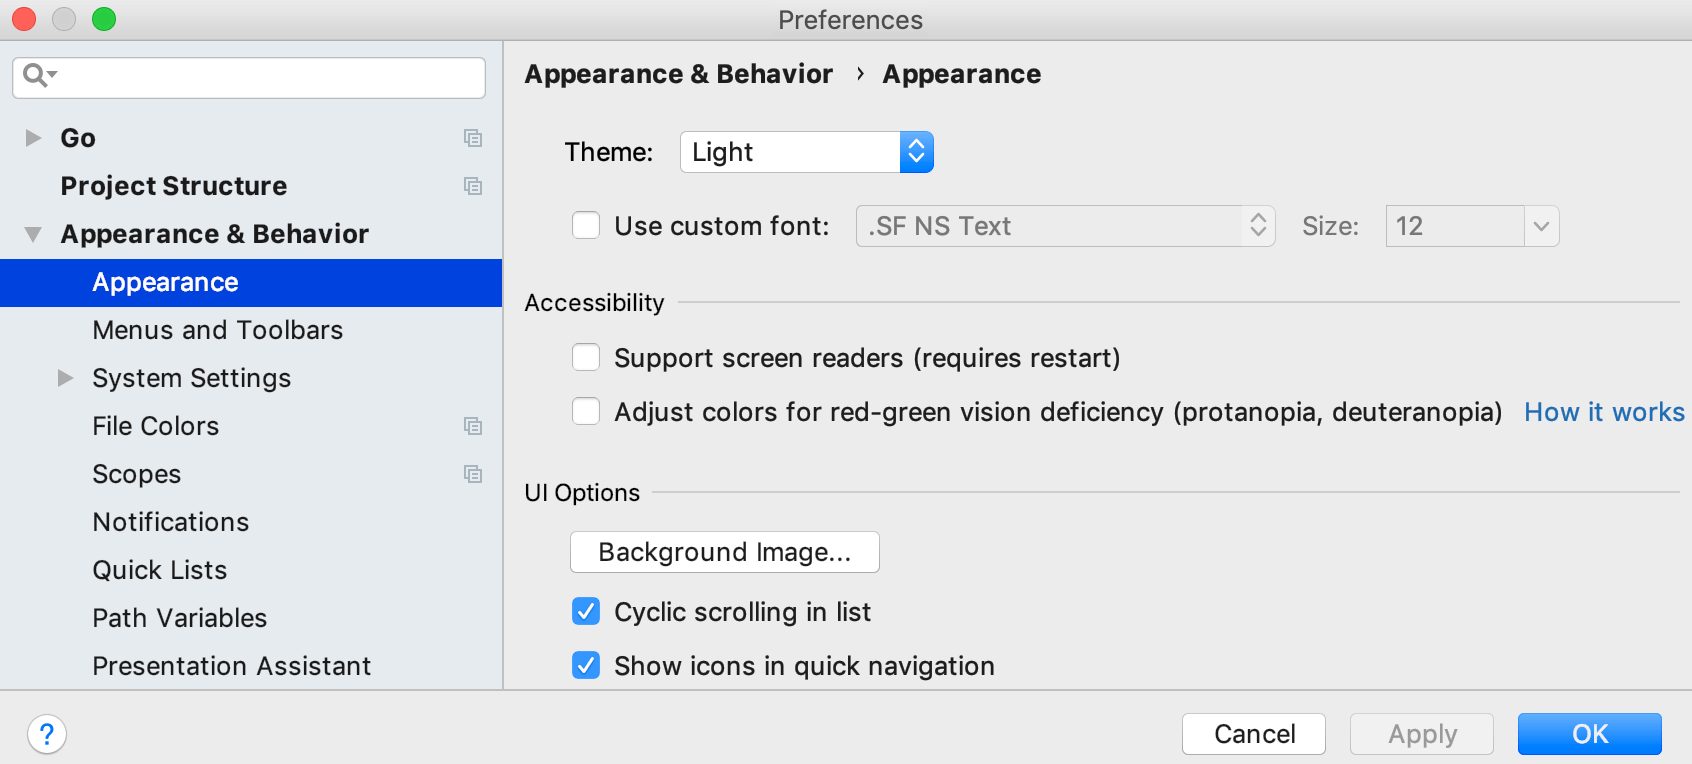 The Background Image button in Appearance preferences